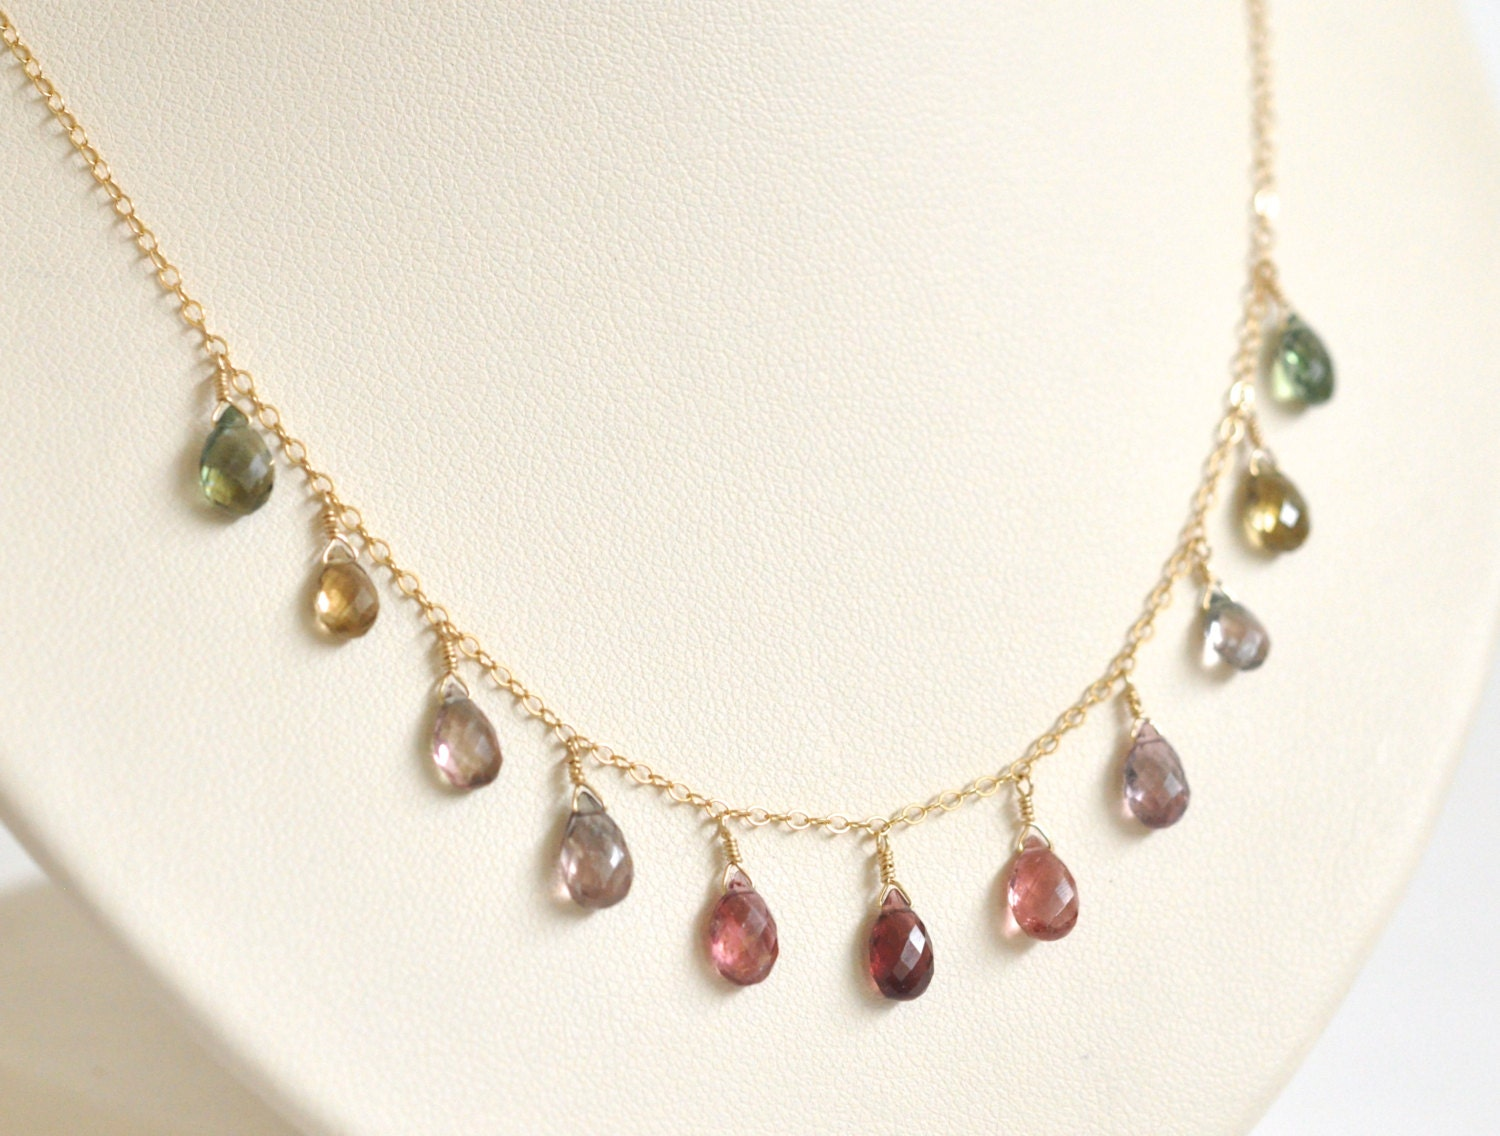 watermelon tourmaline necklace pink and green tourmaline. Black Bedroom Furniture Sets. Home Design Ideas